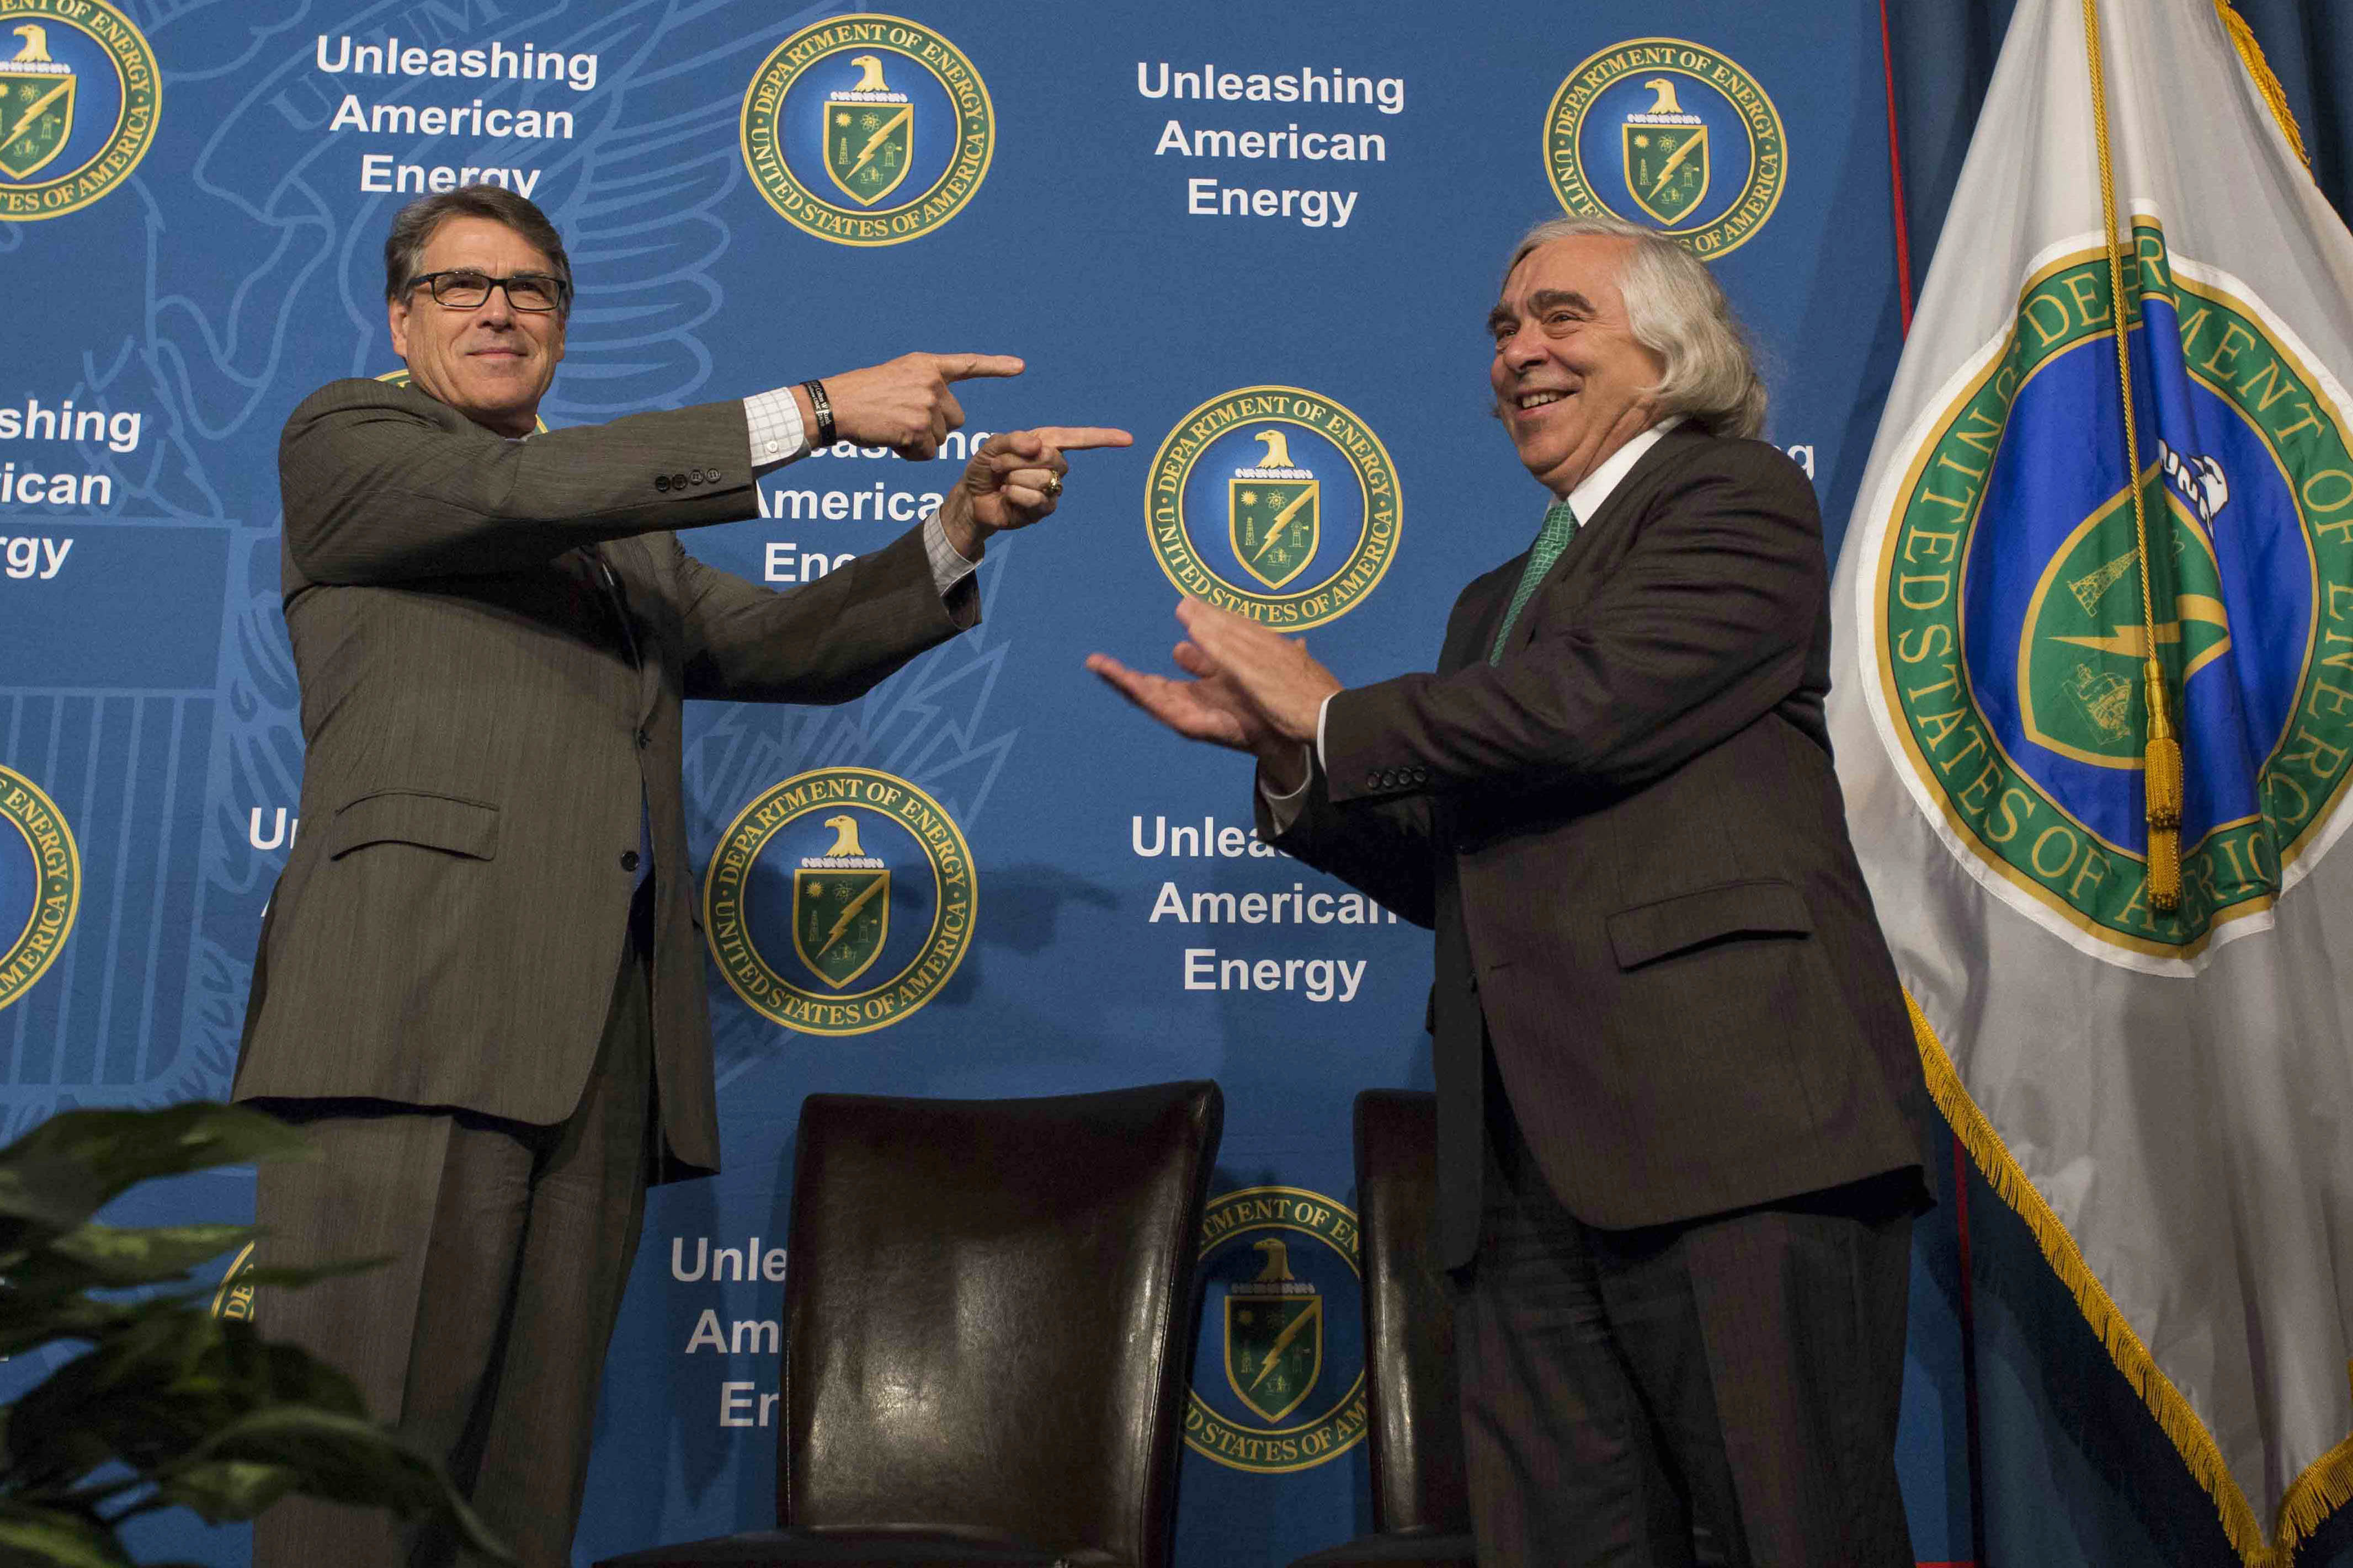 In this Aug. 2, 2018 photo made available by the U.S. Department of Energy, Energy Secretary Rick Perry welcoming his predecessor, Ernest Moniz, during the unveiling of Moniz's portrait. Simon Edelman/U.S. Department of Energy     https://www.flickr.com/photos/departmentofenergy/36202965571/in/photolist-ny1wad-XigXwL-XigXHs-Xa8EU6-N7N3cM-Xa8F2v-XigXA3-Xa8EJX-Xa8EEZ-Xa8F7F-Xa8ETe-X7i1W1-Xa8F3H-bF5Abh-vE7kH9-KZnGYL-X5pZHf-224K5Jp-DVPeYm-224K5sT-DVPfAU-224K572-fkwAbh-Xa8Enz-CqdLEn-2222eqQ-224KUu4-224Lmr4-CqdM12-CqdN8x